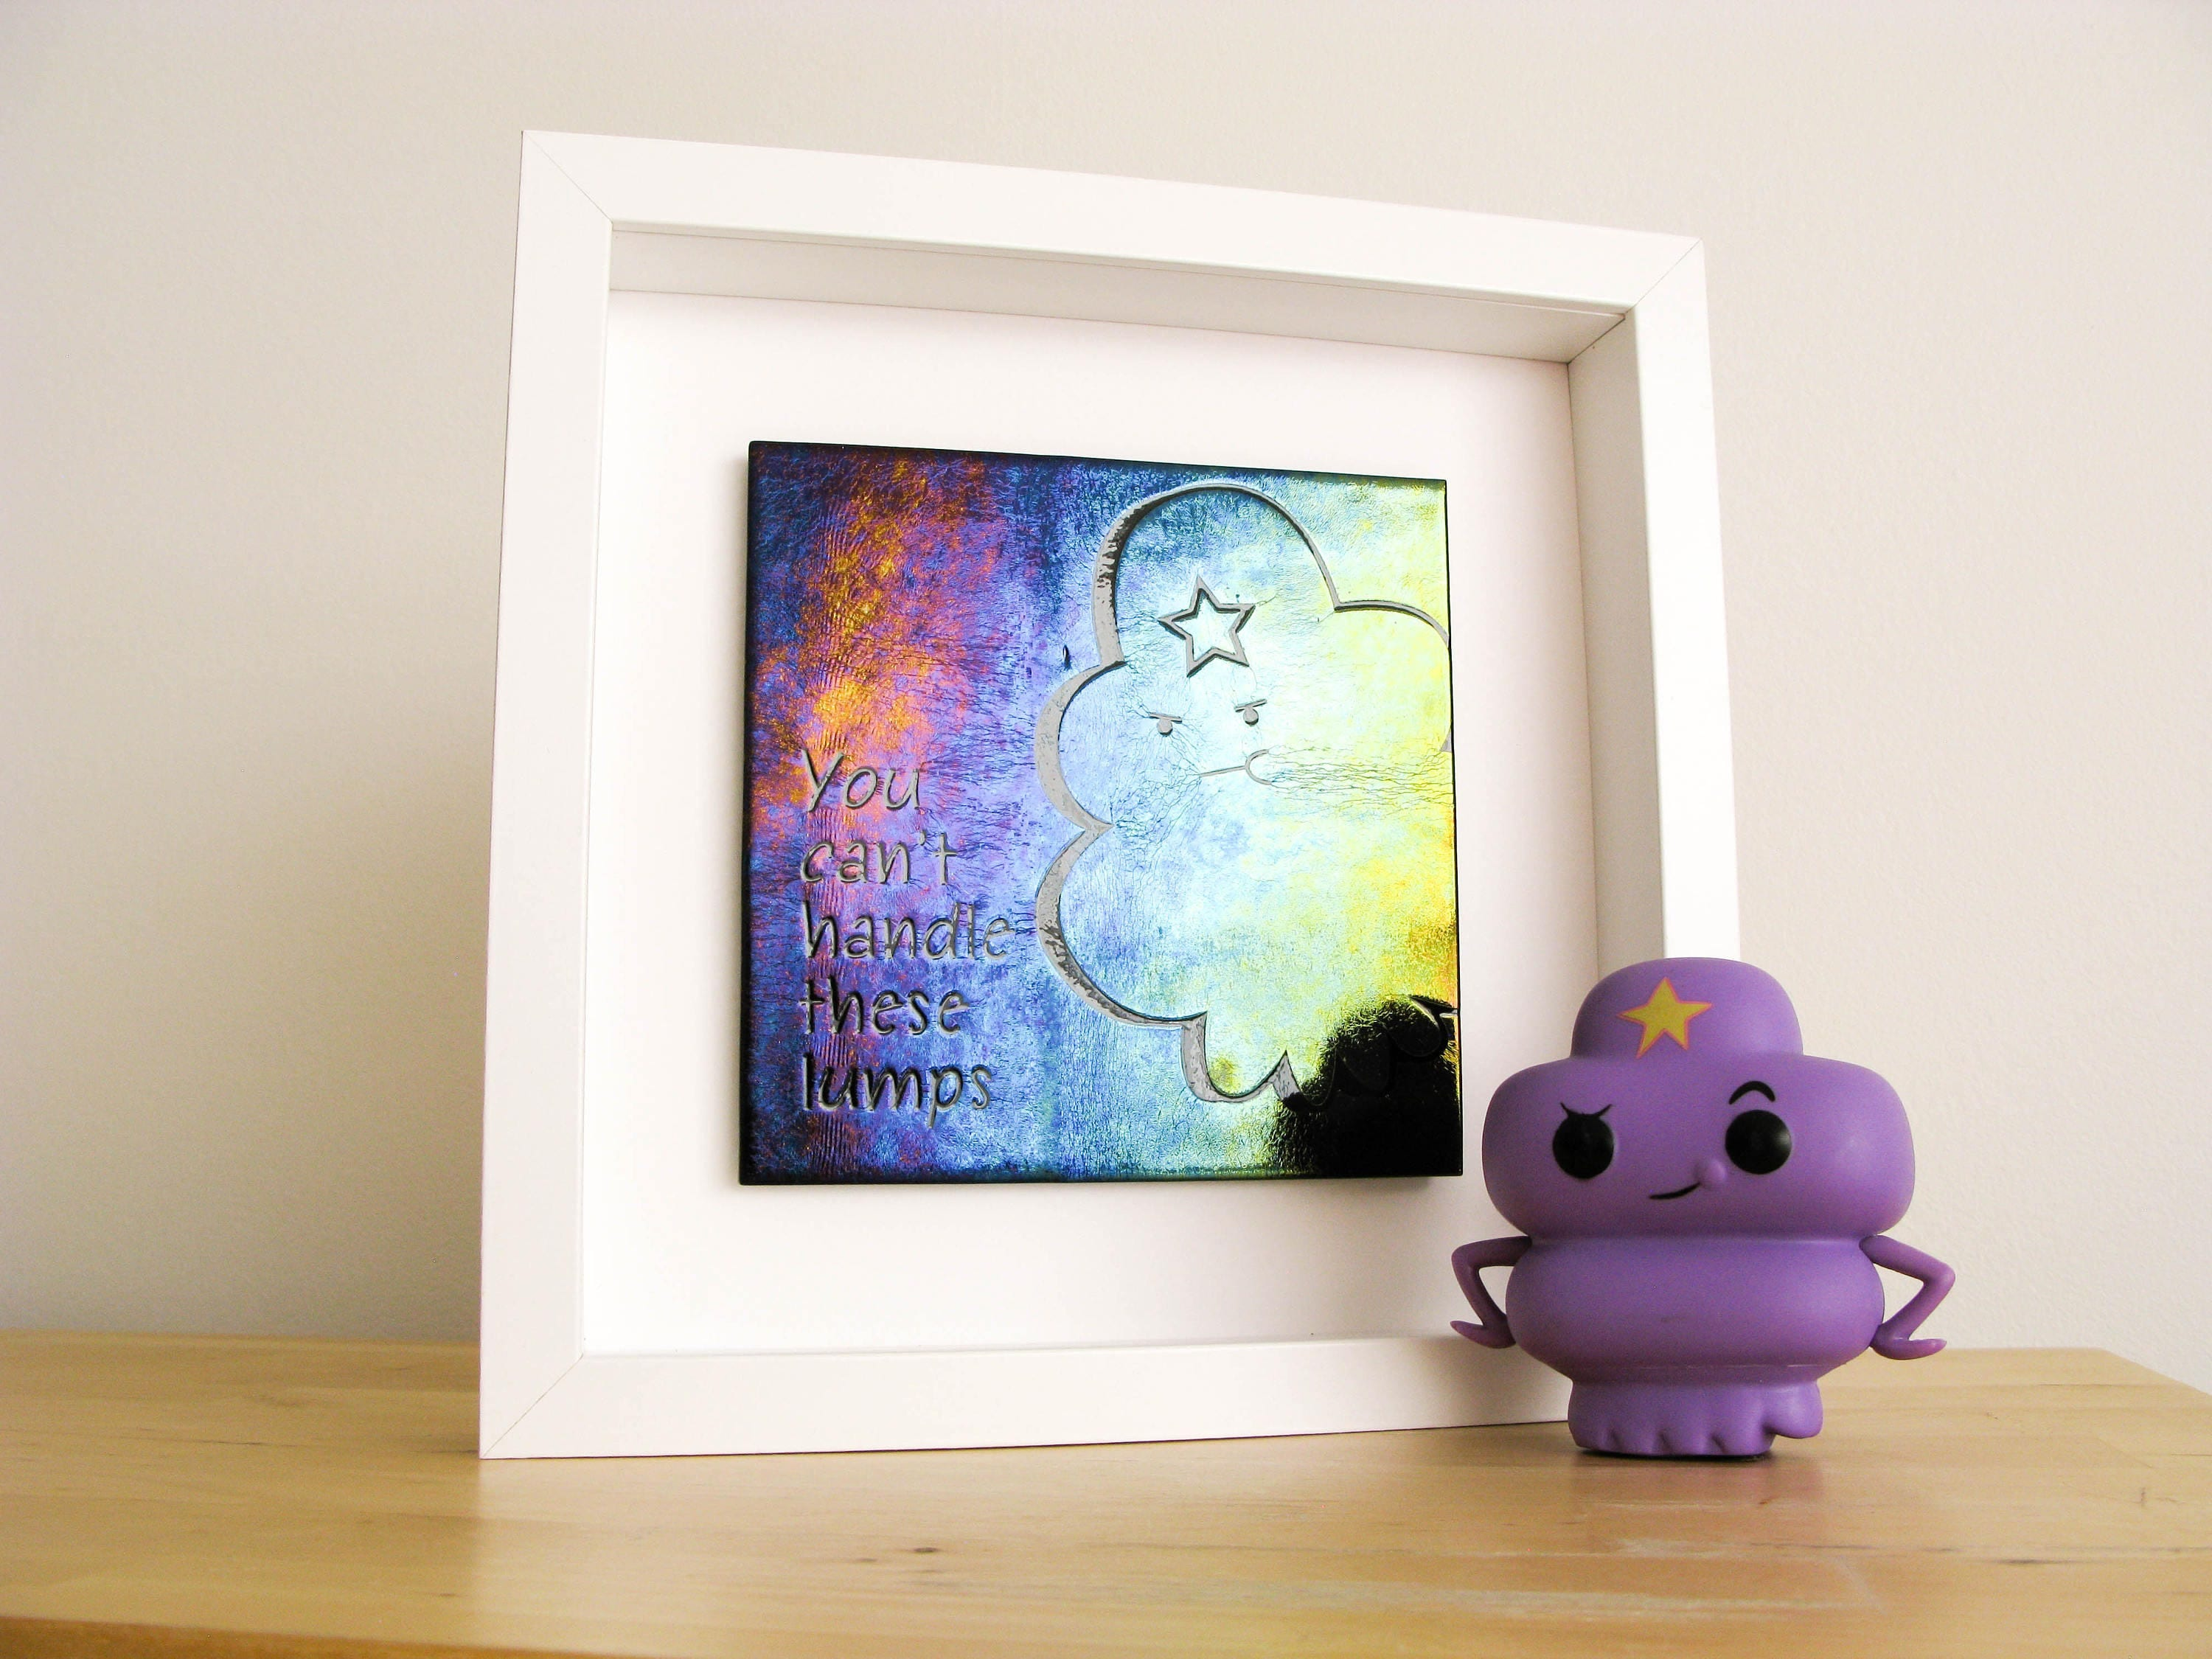 nerd decor - lumpy space princess wall art adventure time decor lsp glass